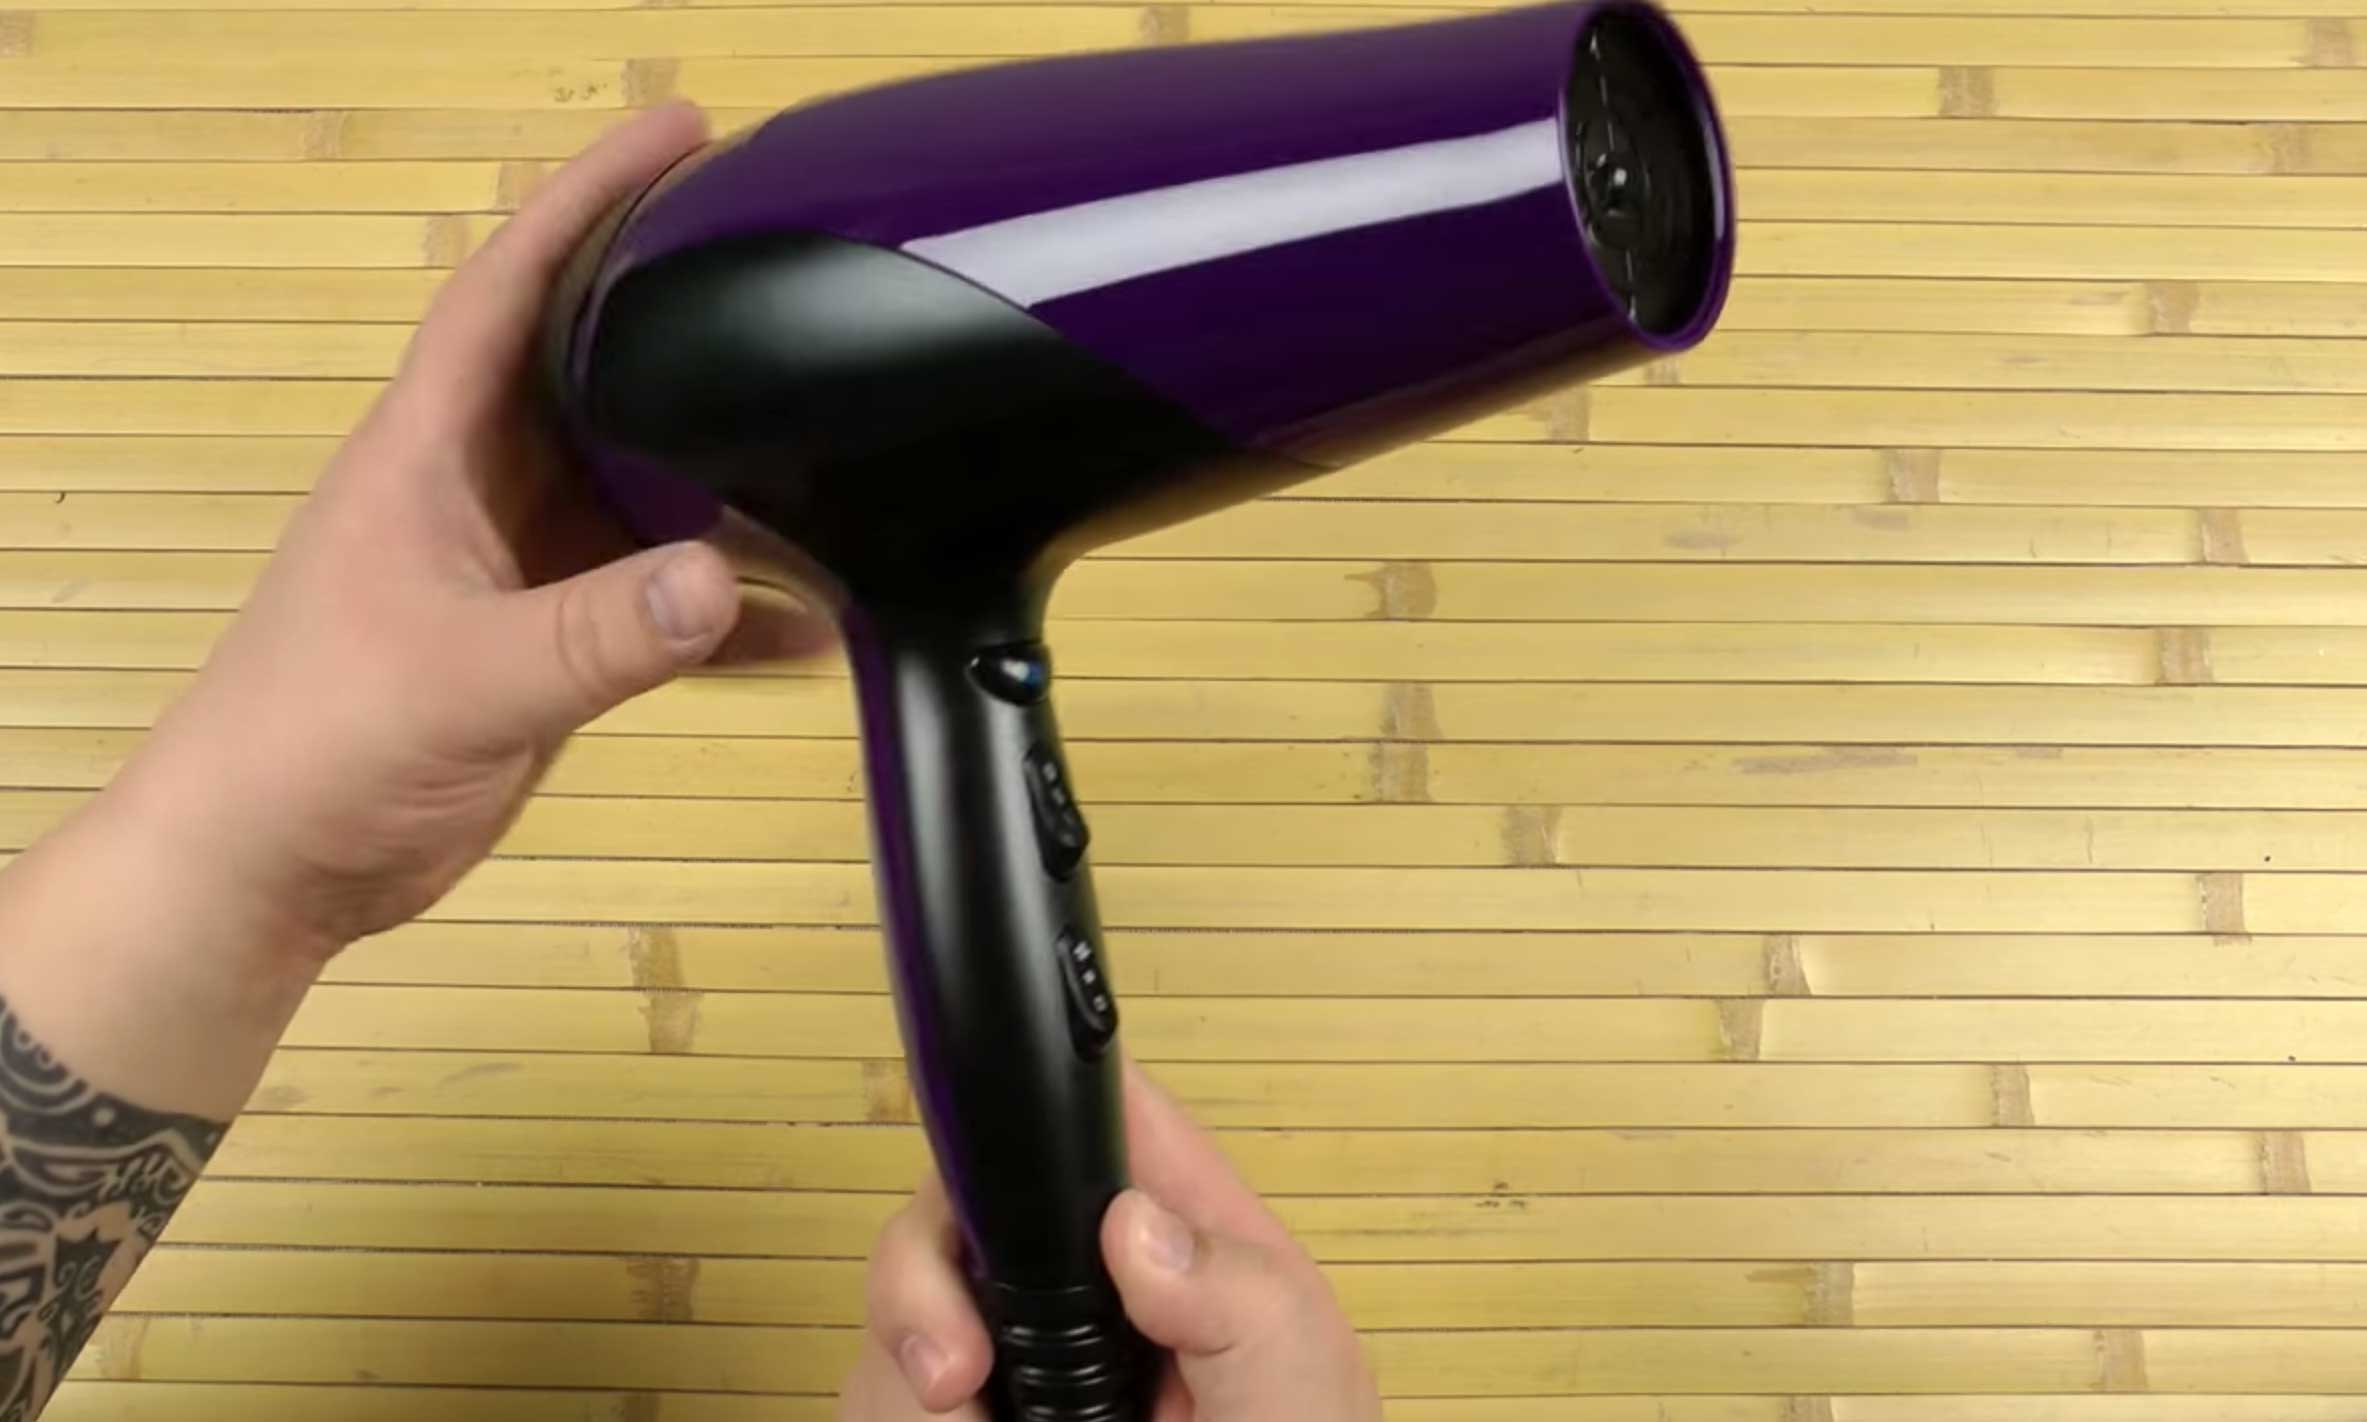 Best Hair Dryer Reviews 2020 - Best Professional Hair Dryer for Home Use